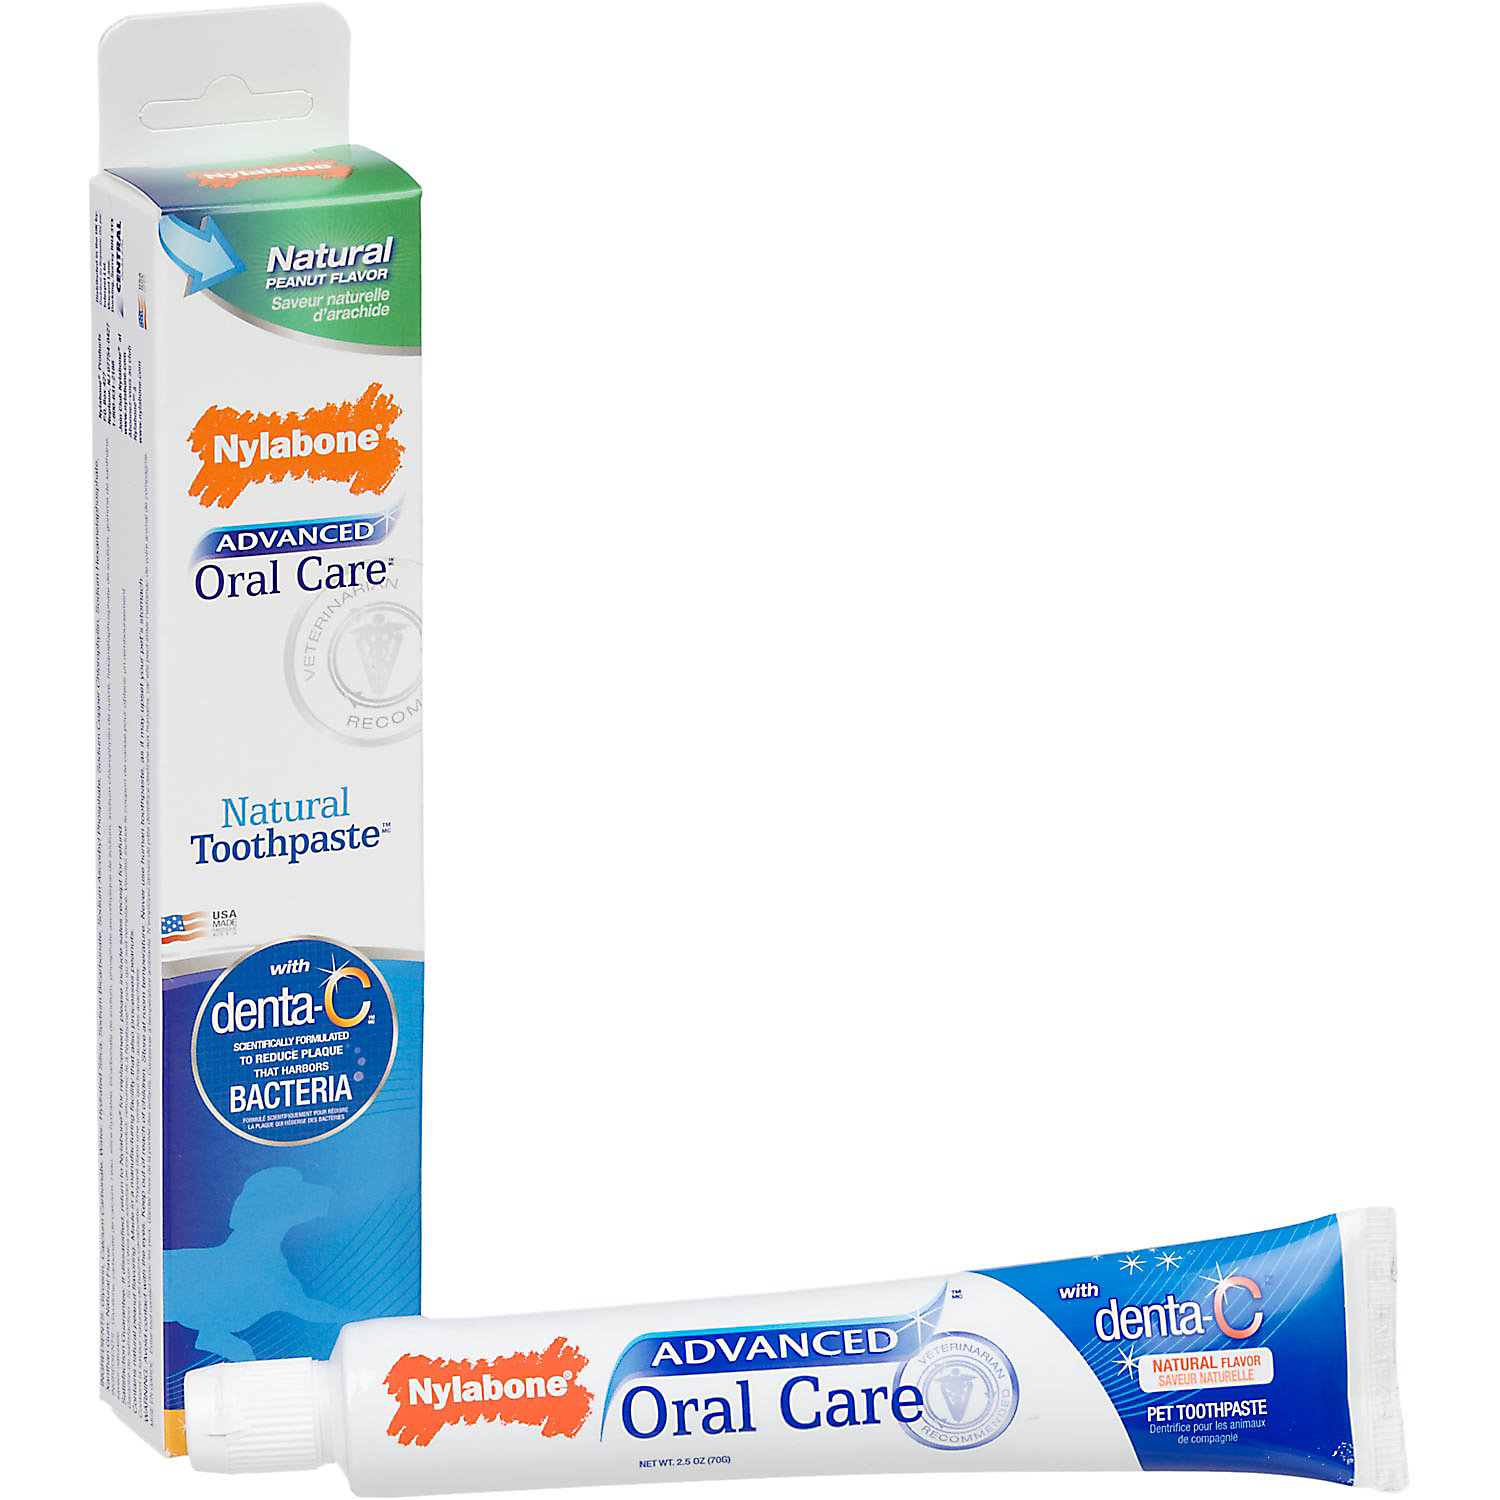 Nylabone Advanced Oral Care Natural Peanut Flavor Dog Toothpaste 2.5 Oz.